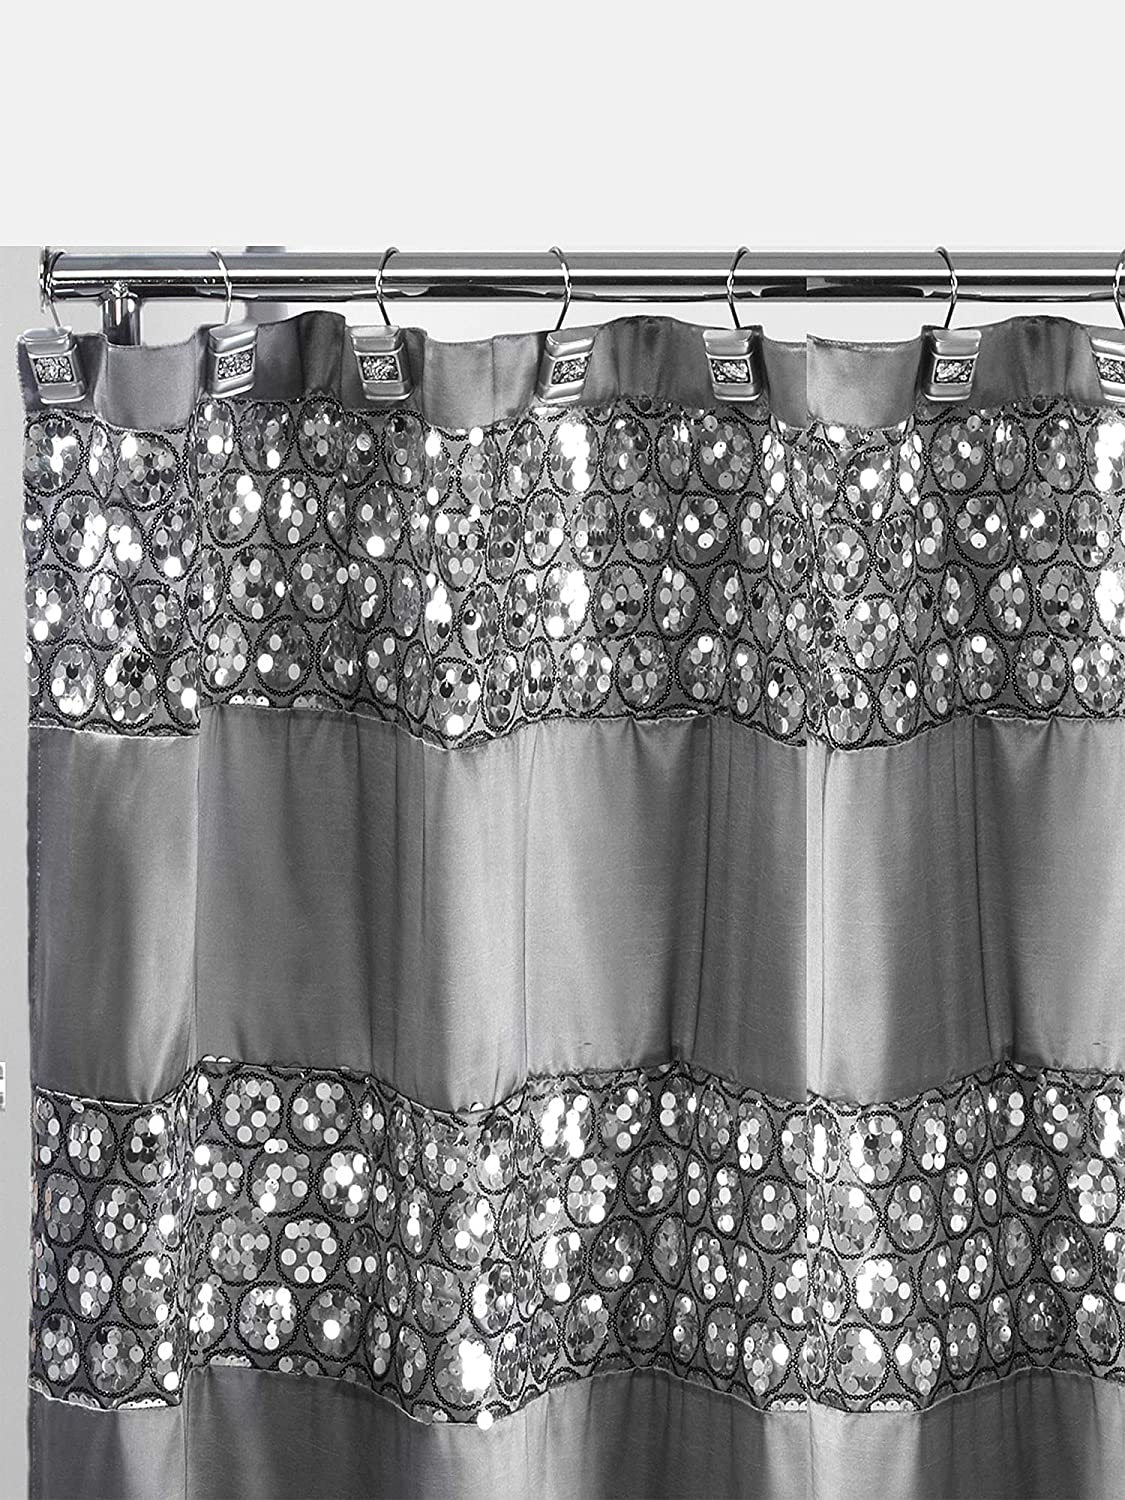 Popular Bath Sinatra Shower Curtain, Silver 738980231014